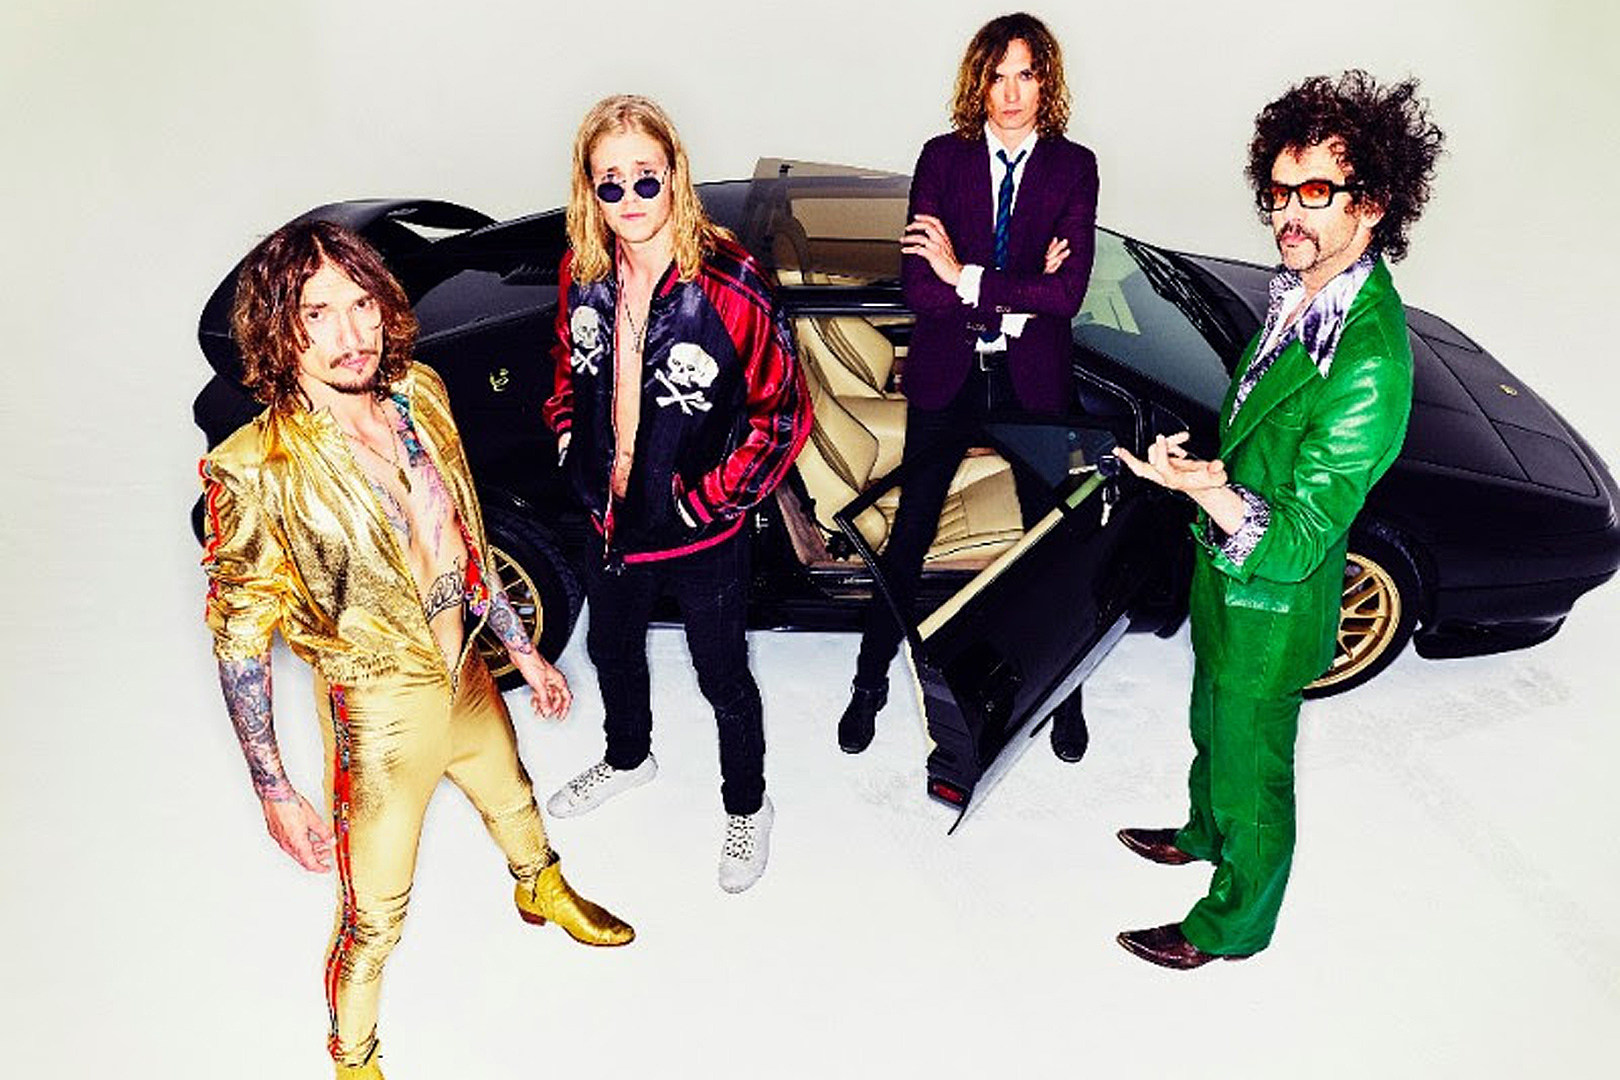 The Darkness Reveal 'Pinewood Smile' Album Details, Unleash 'All the Pretty Girls' Song